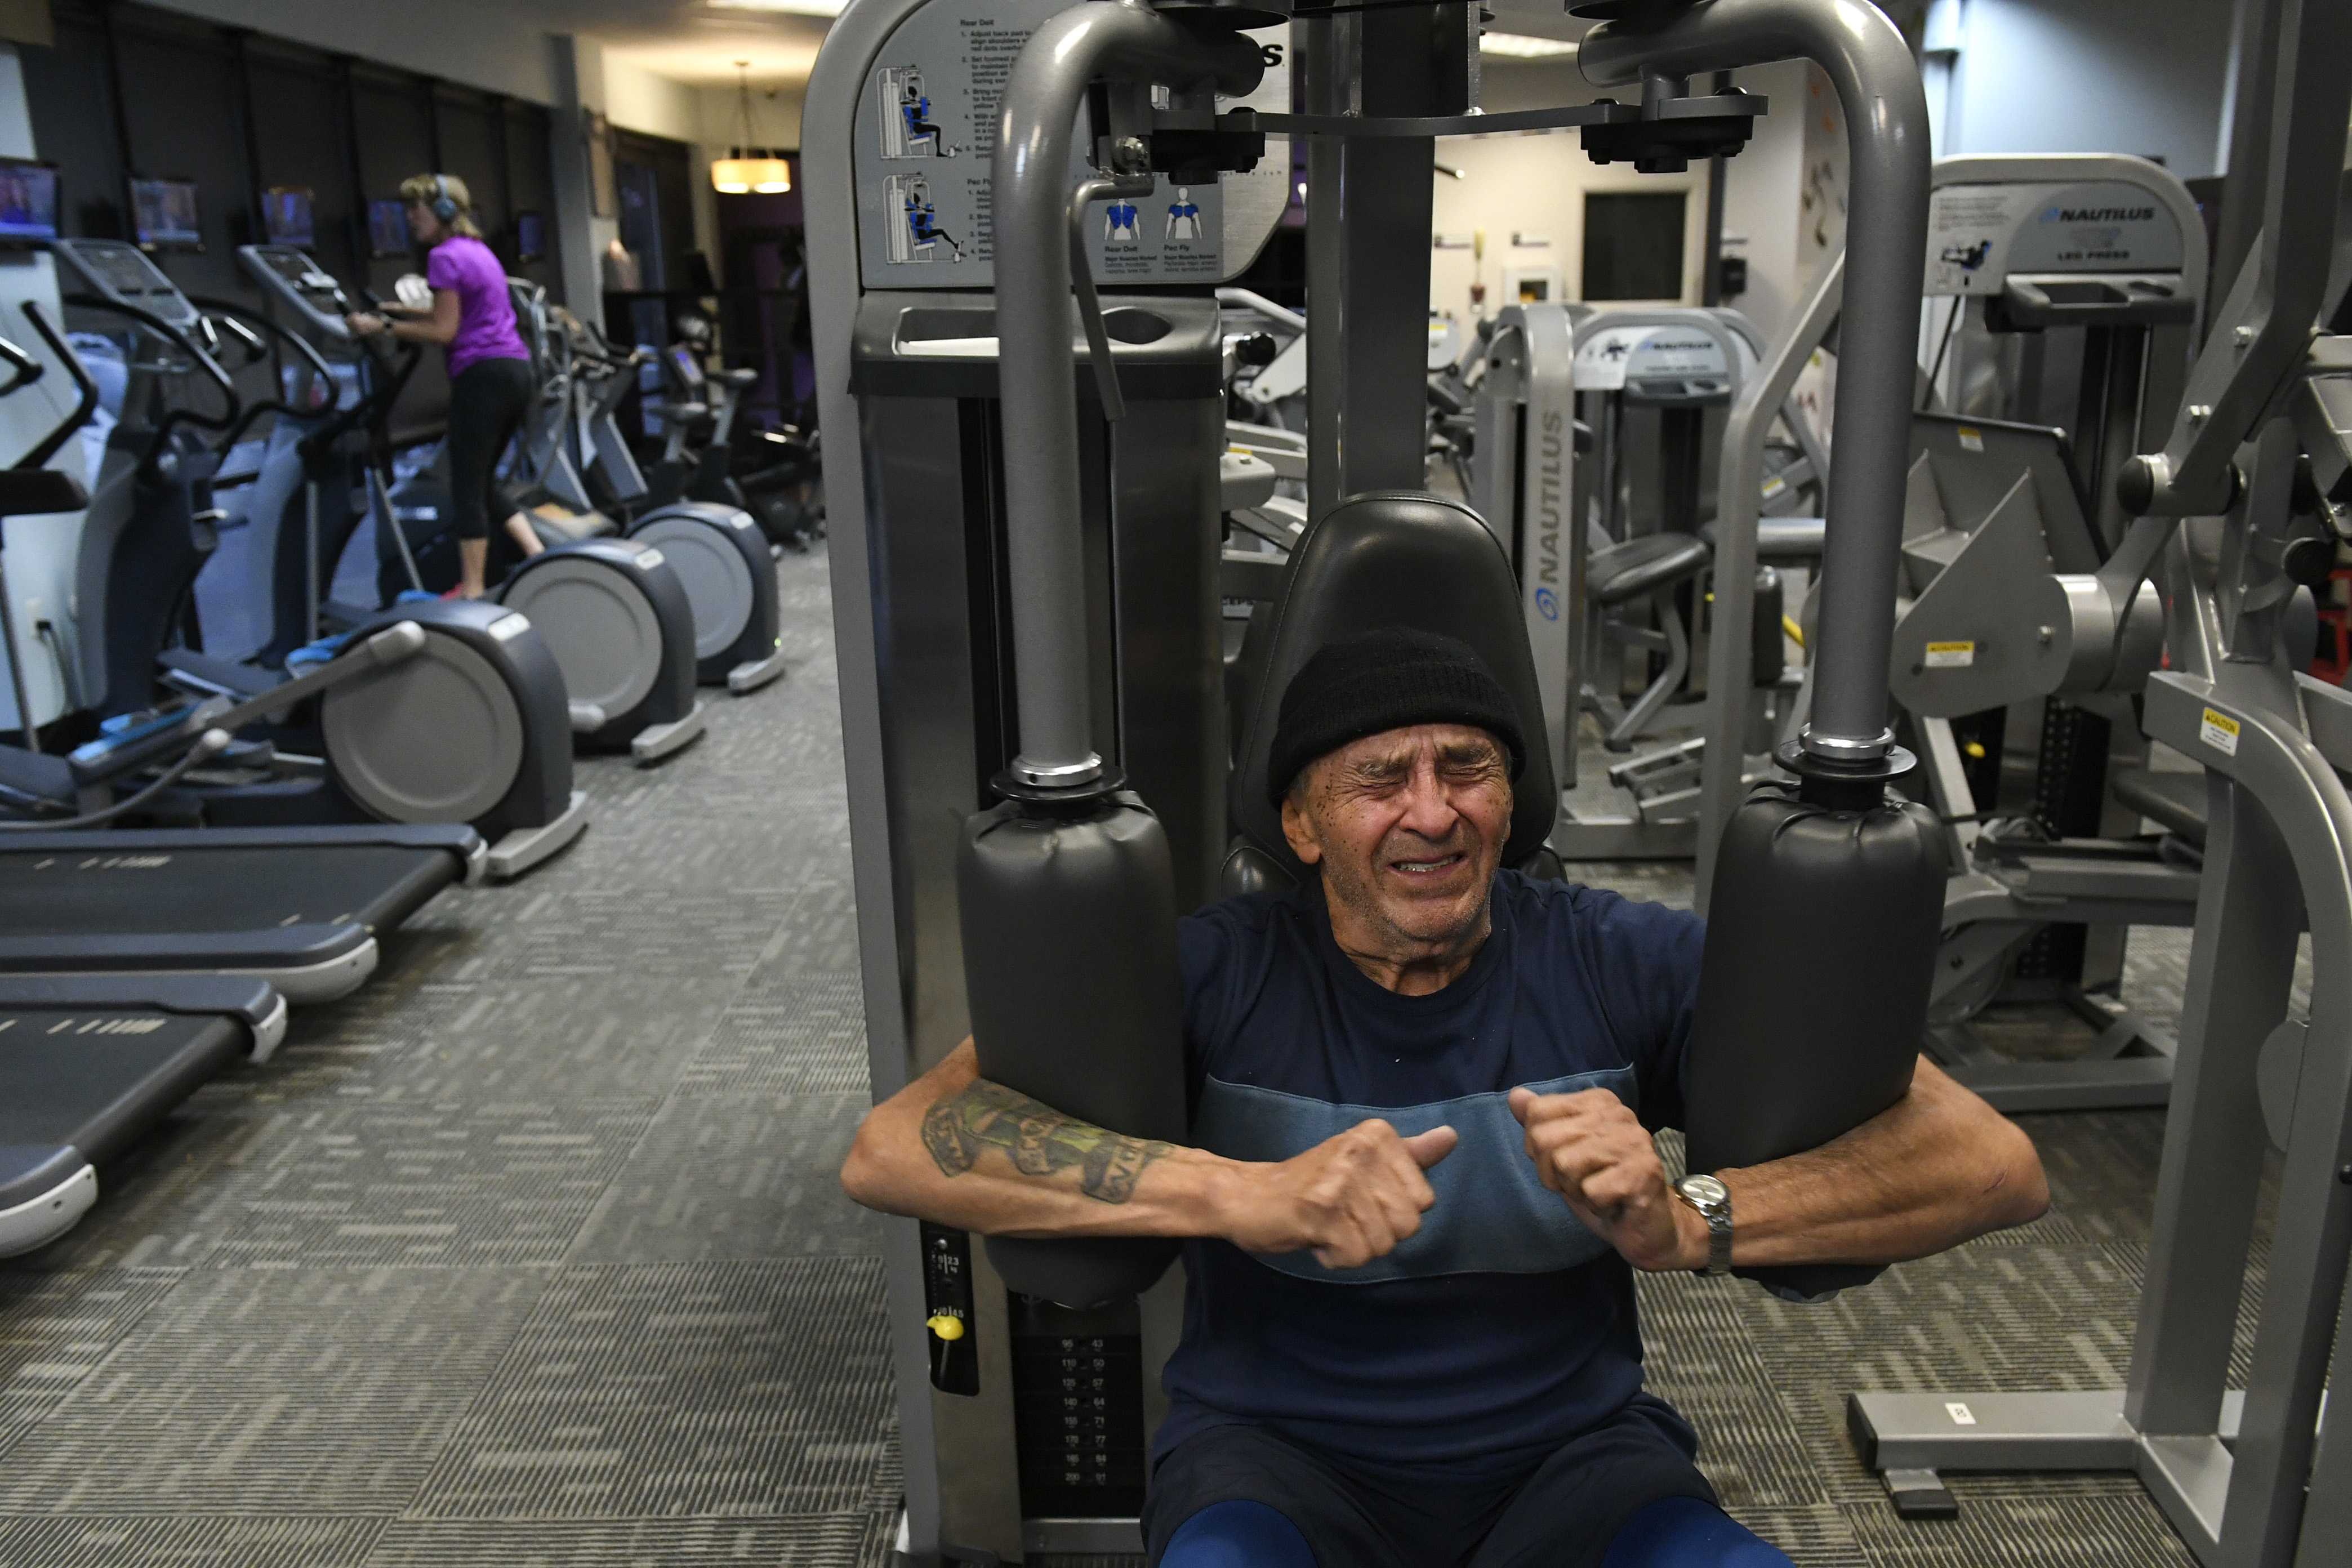 Tony Sanchez works out hard during ...